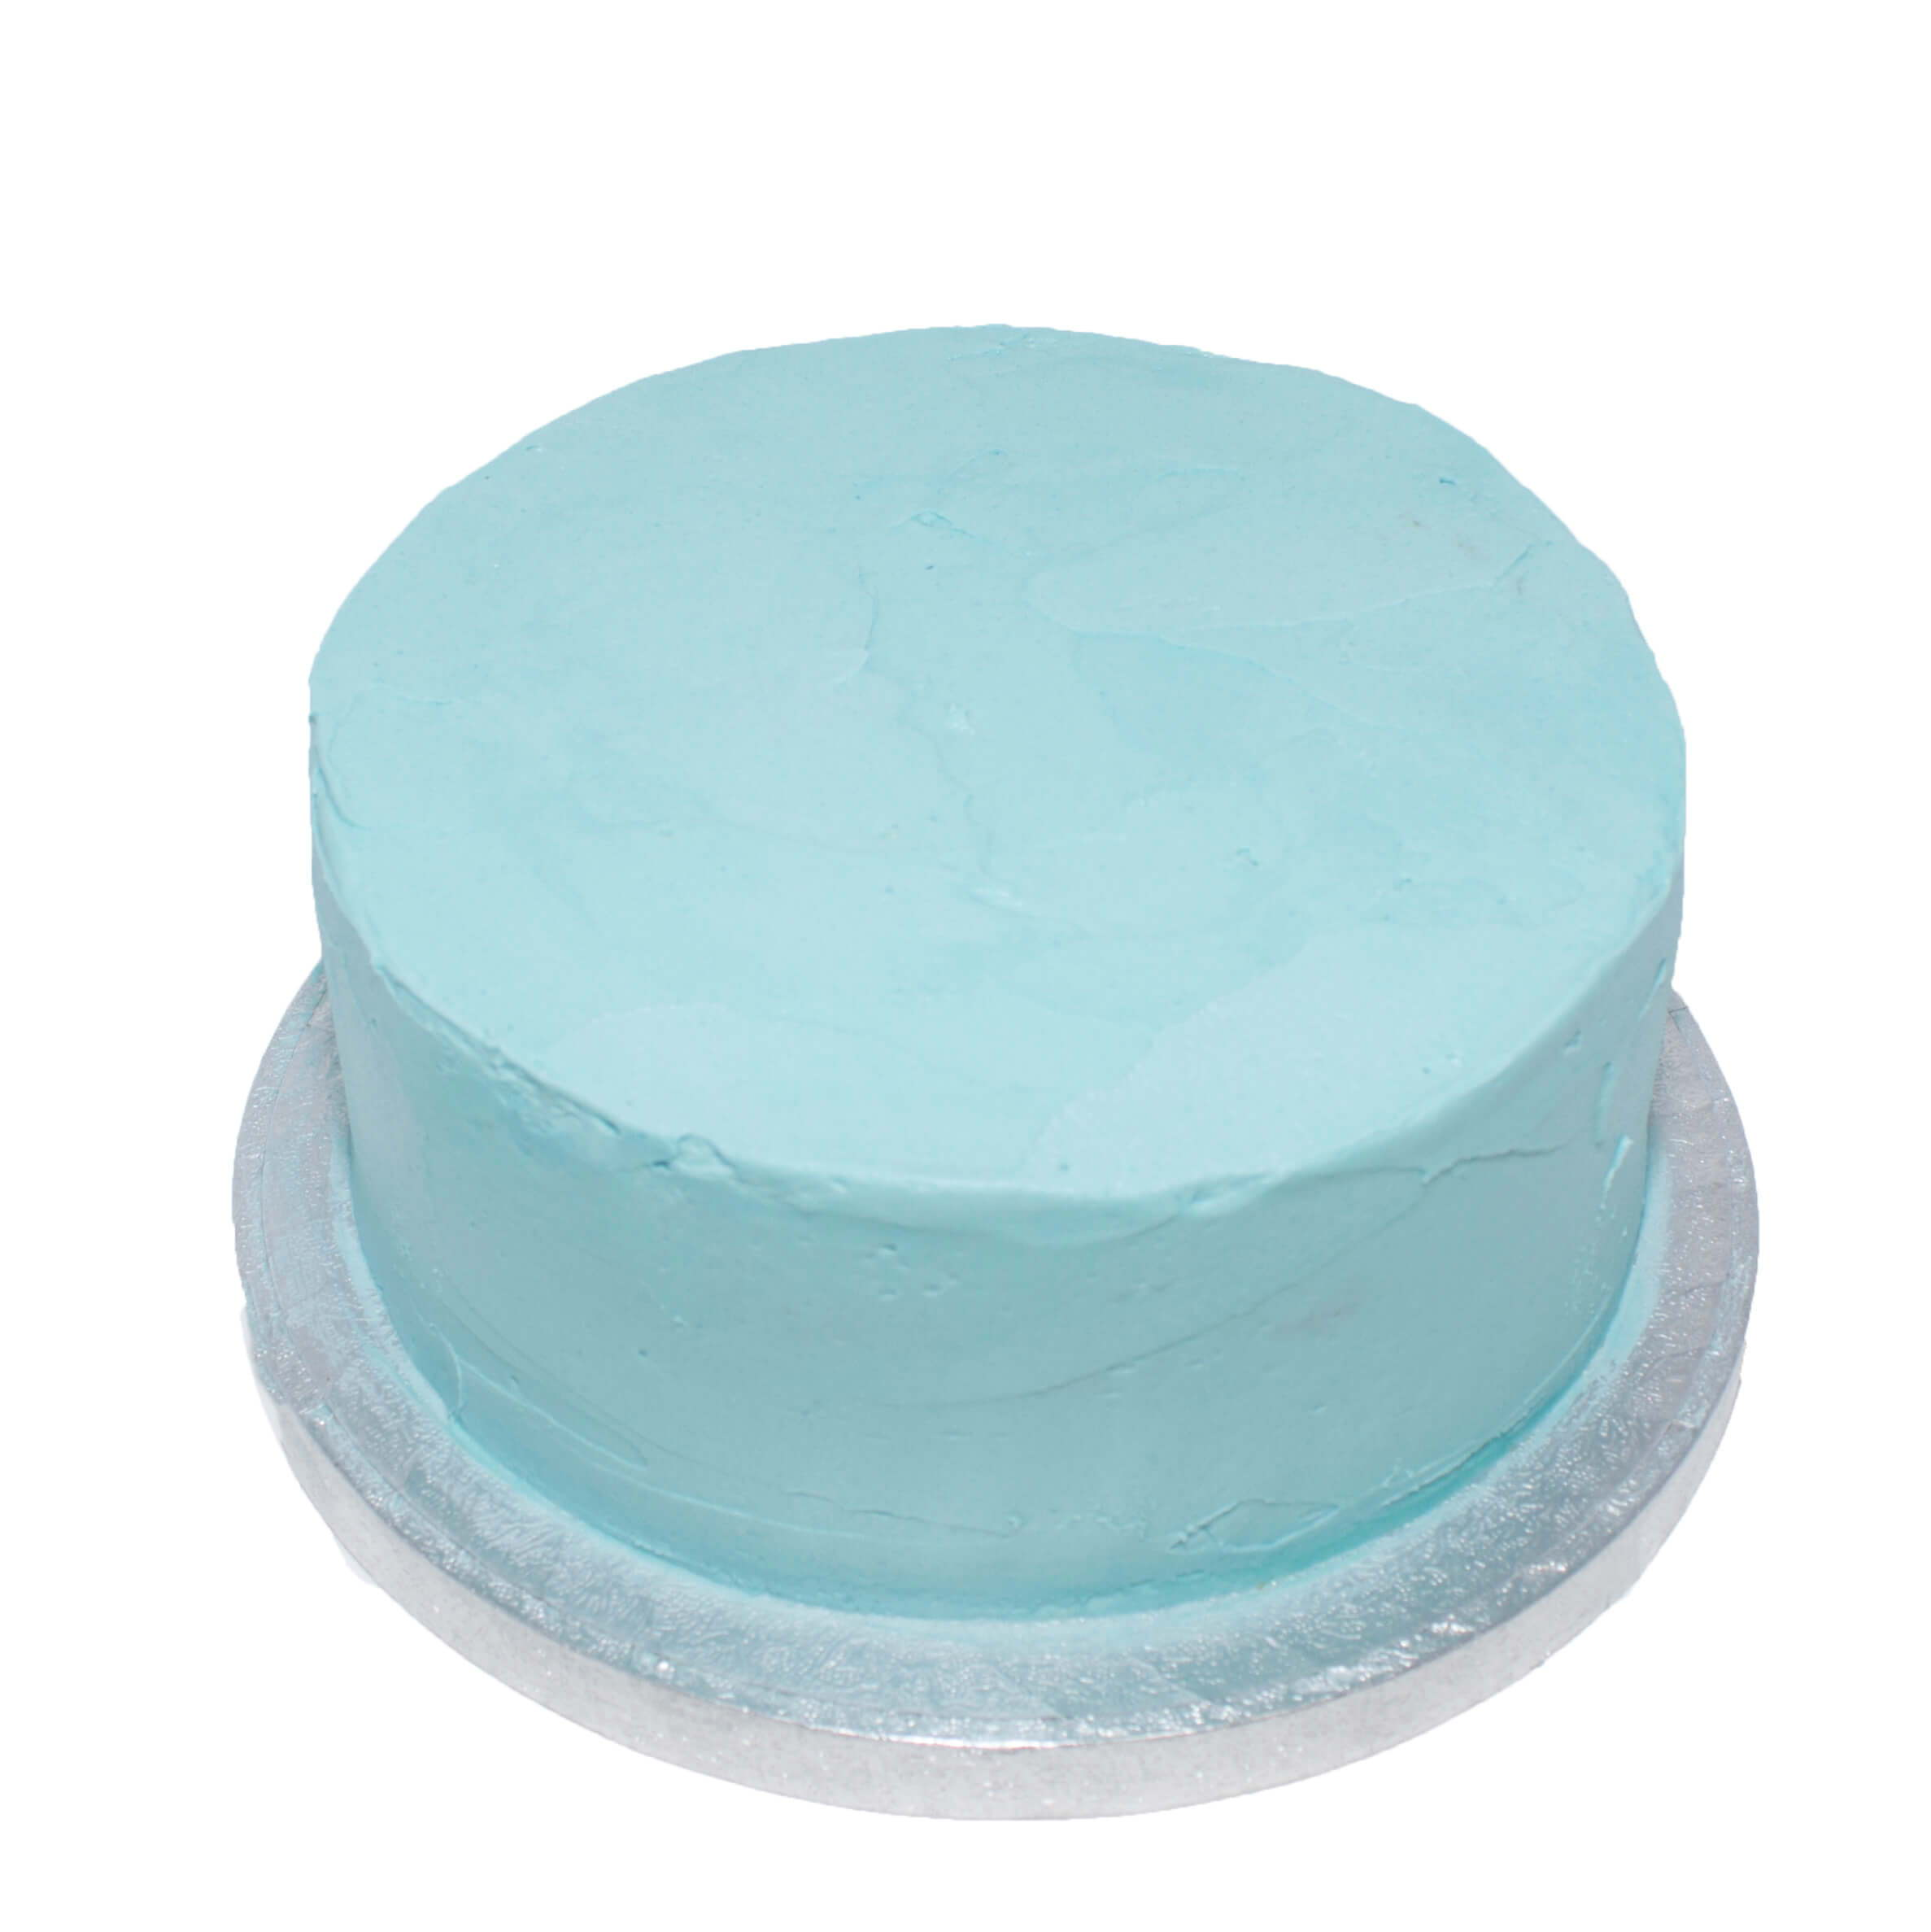 Blue cake decorating for kids